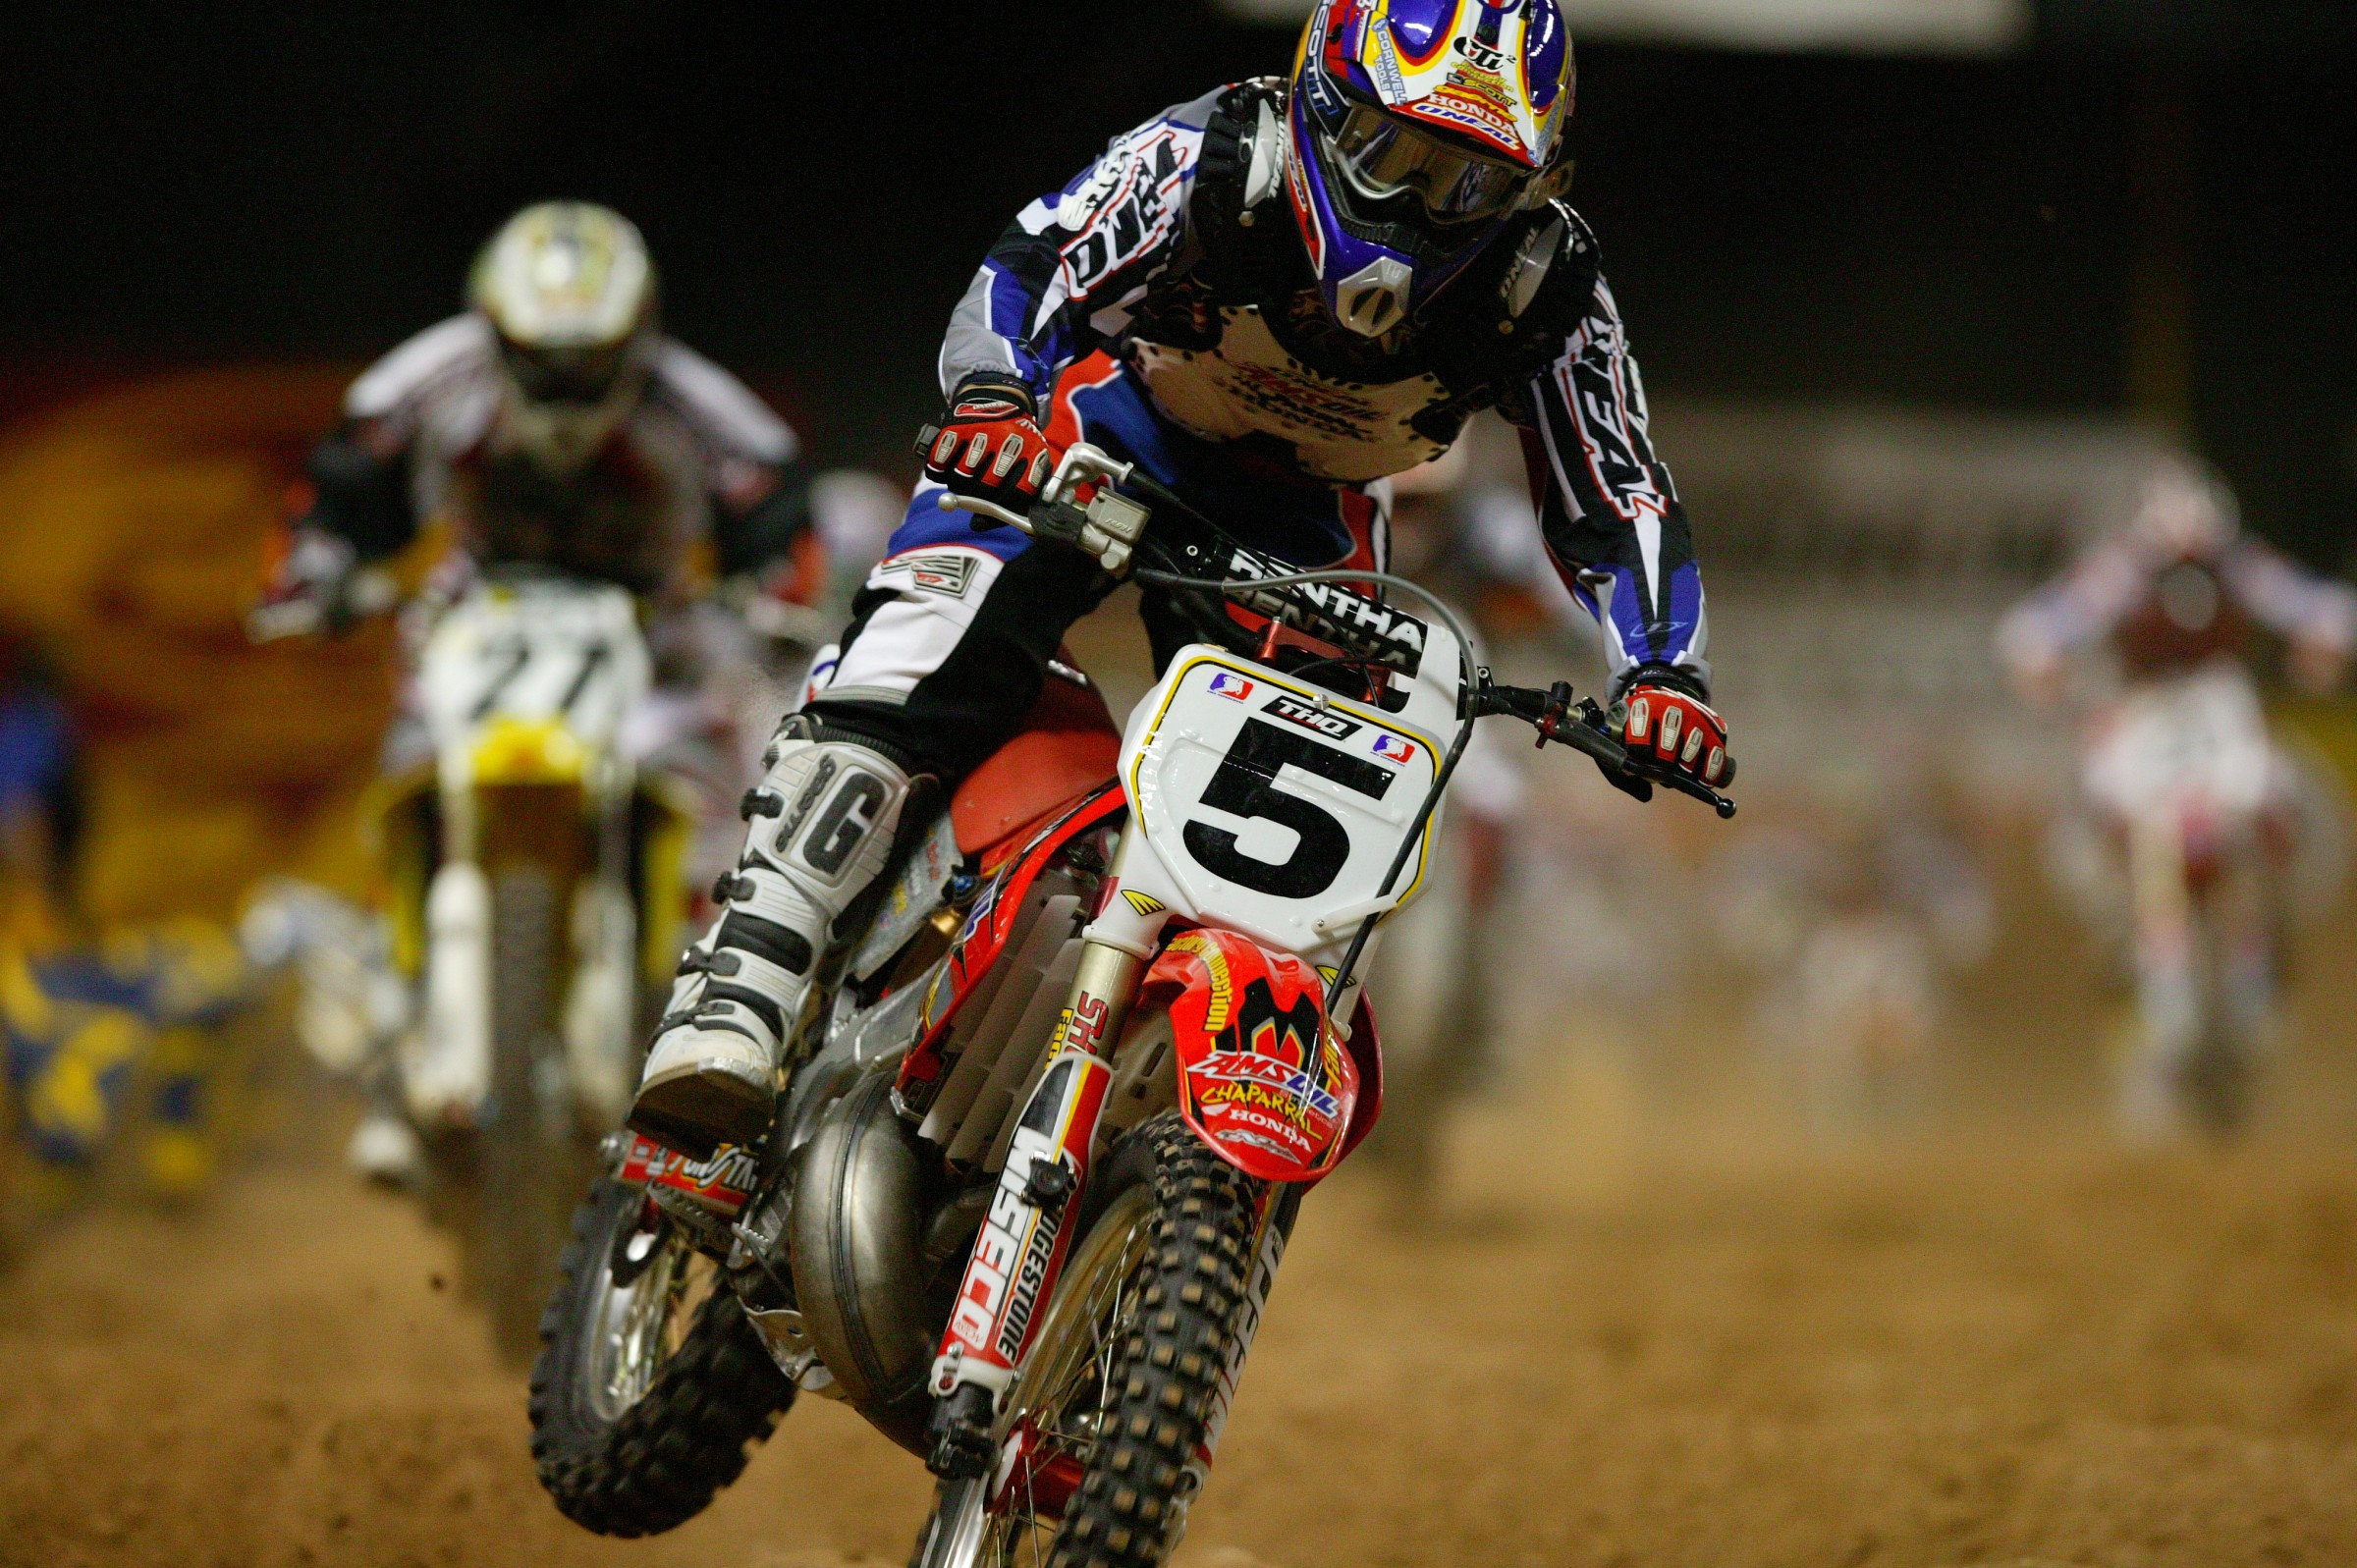 LaRocco earned third place overall behind Chad Reed and Kevin Windham in 2004.